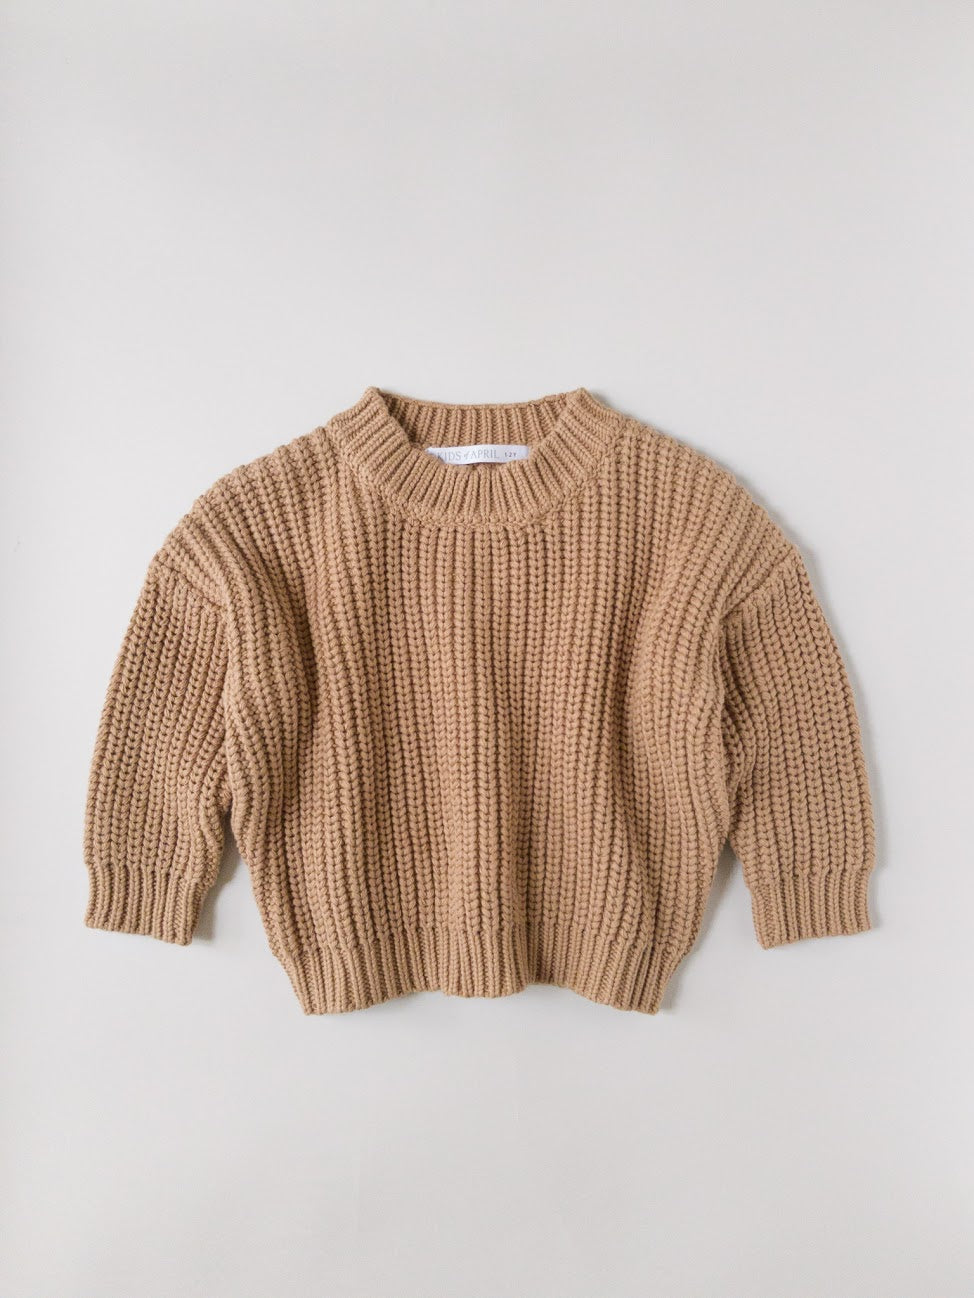 Kids of April Chunky Jumper in Toffee